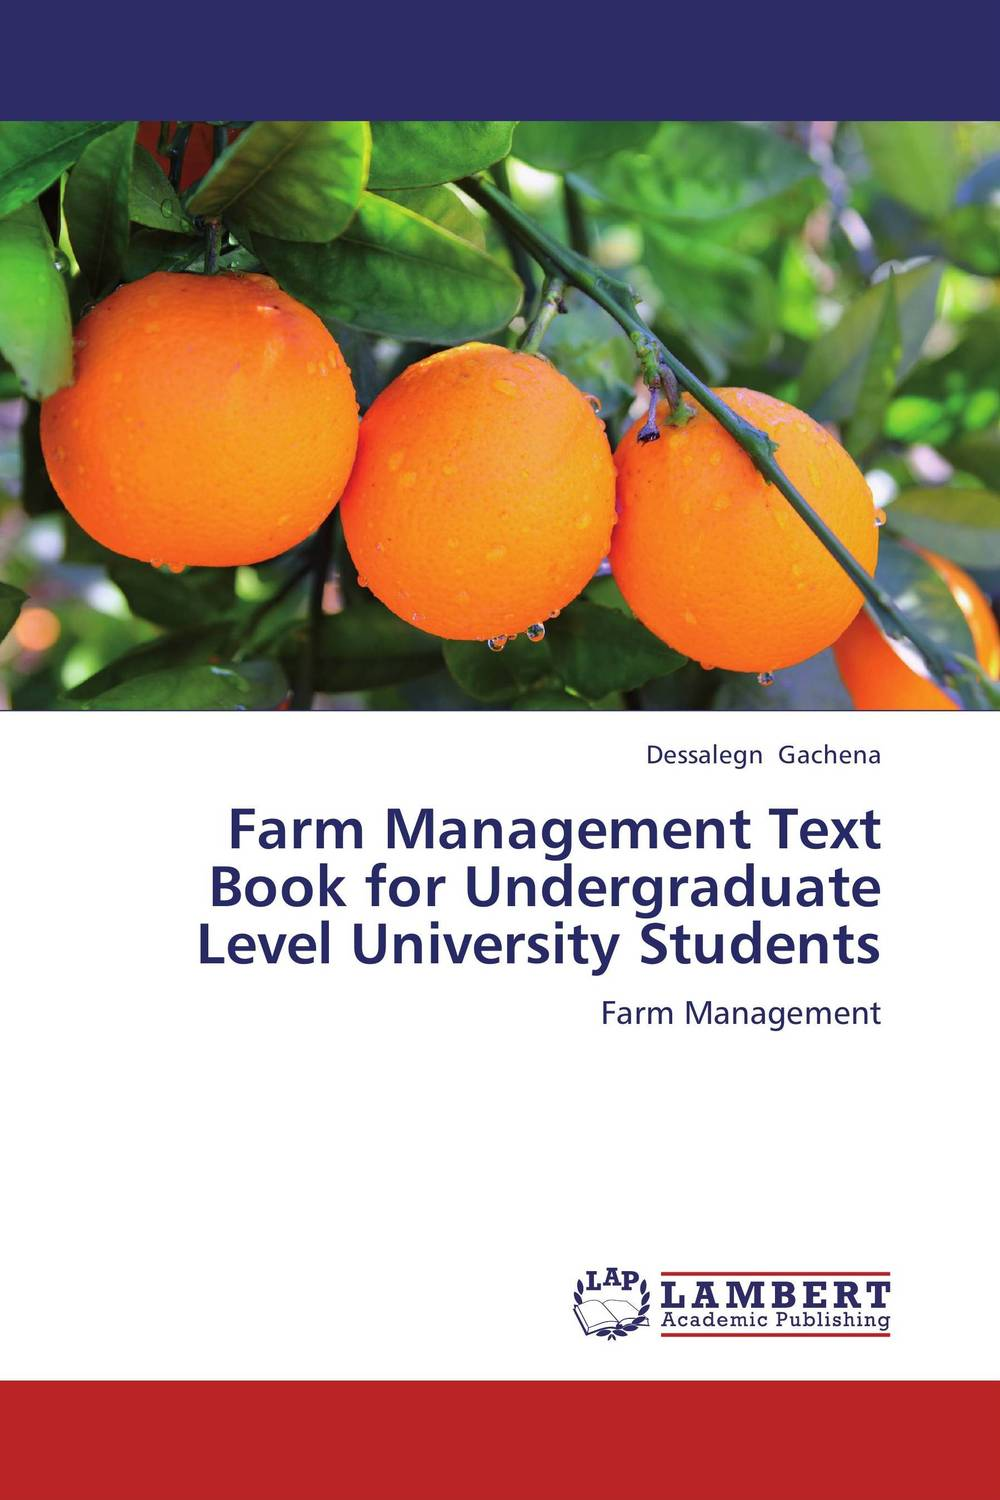 Farm Management Text Book for Undergraduate Level University Students maisy s farm sticker book